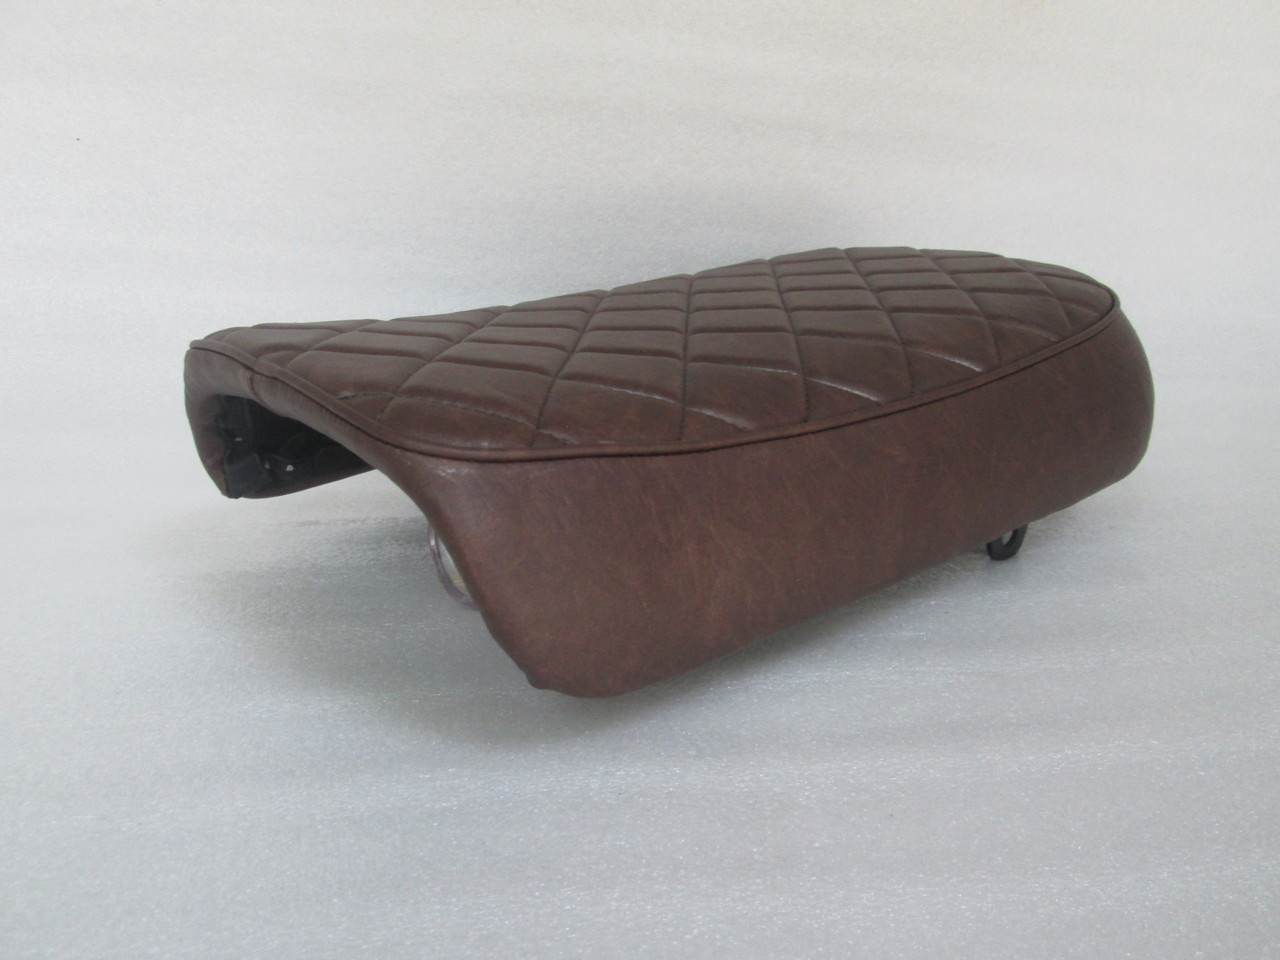 1981 Honda GL500 Cafe Racer Seat with Modified Seat Pan #4217